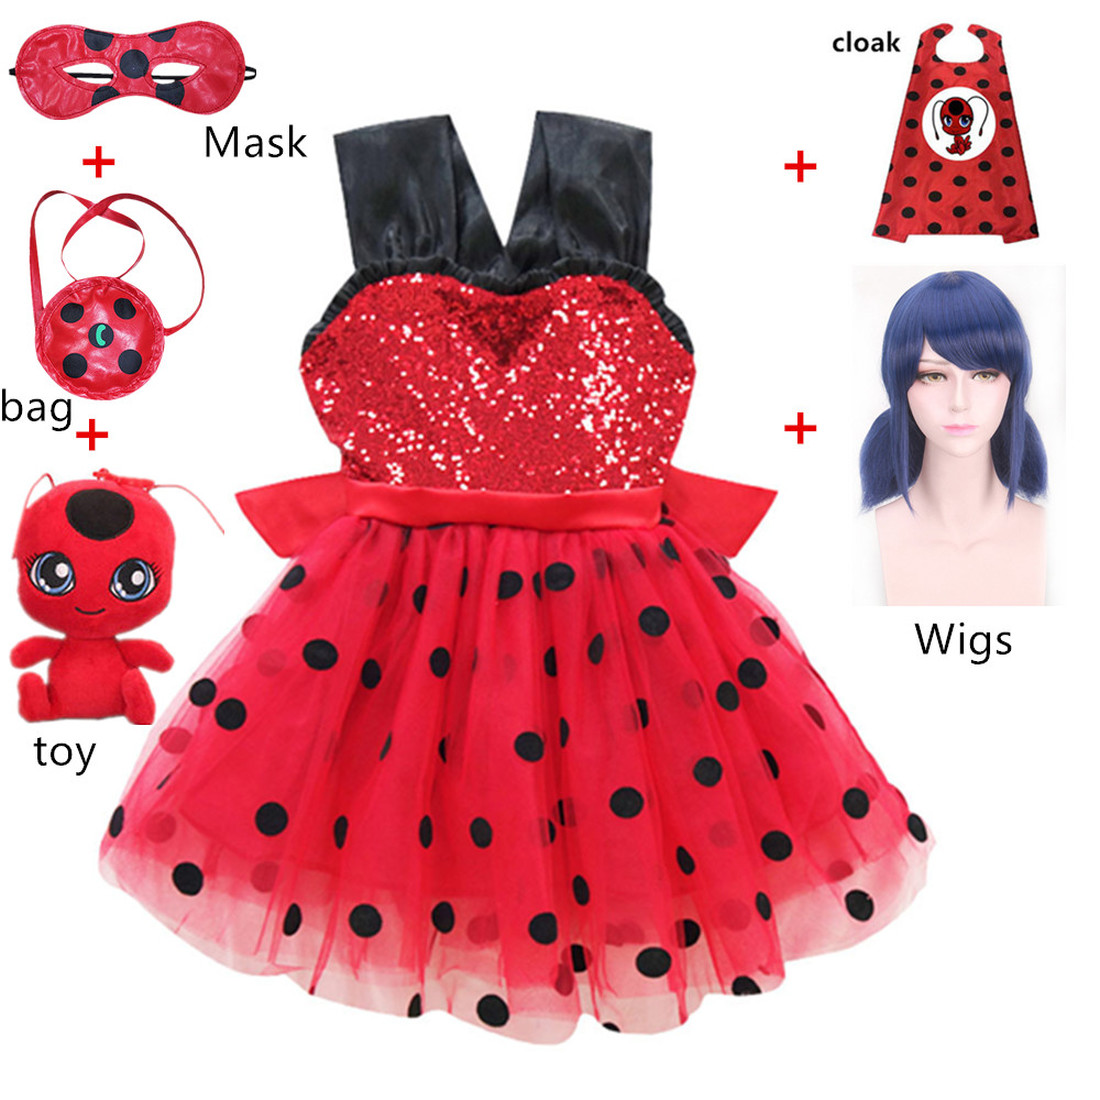 Carnival 2019 Girls clothing Ladybug cosplay Girls Dress Summer Clothes Lady bug birthday Dress moana Halloween Fancy dresses